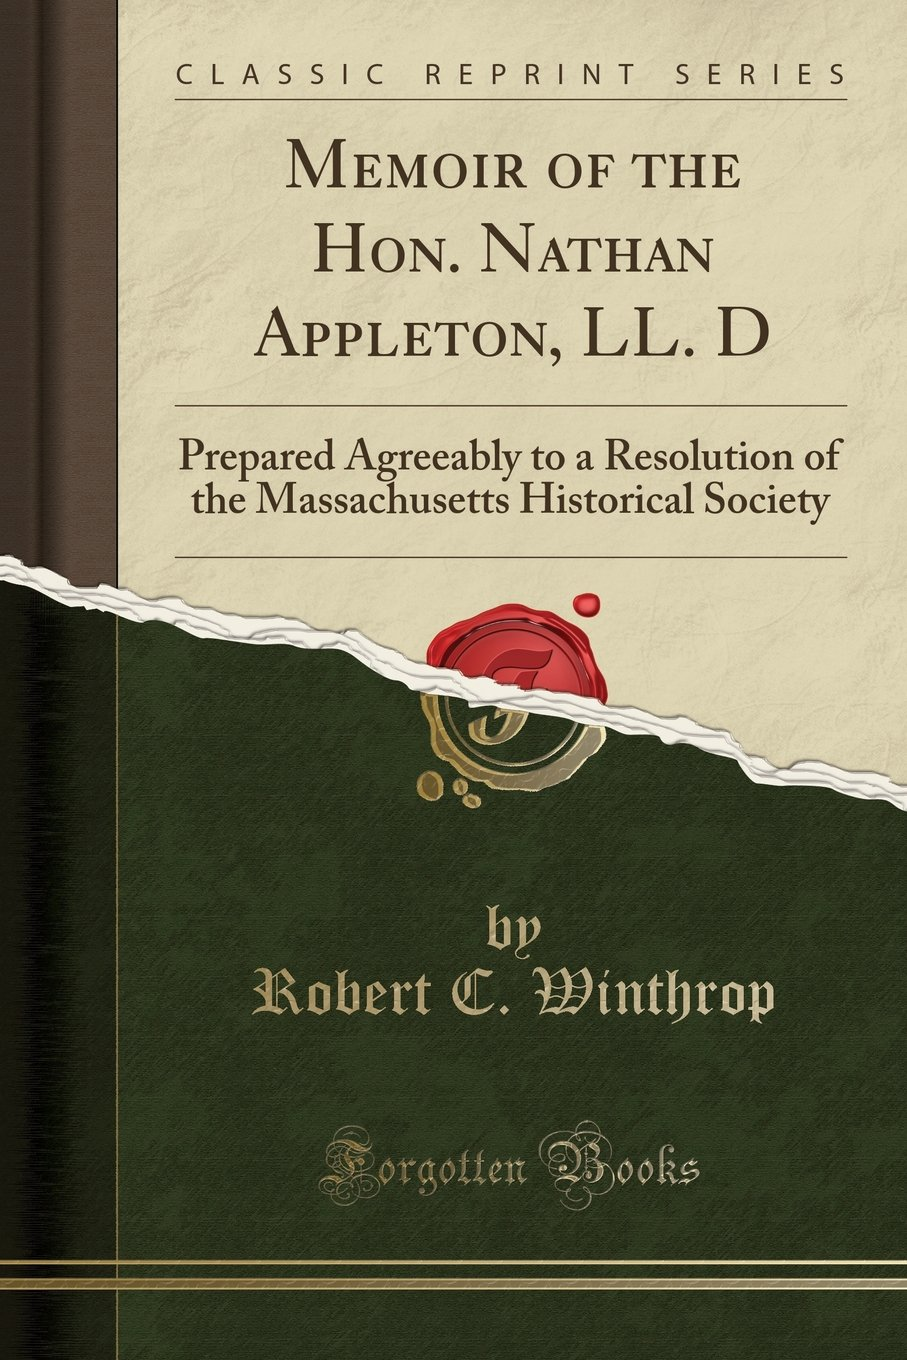 Memoir of the Hon. Nathan Appleton, LL. D: Prepared Agreeably to a Resolution of the Massachusetts Historical Society (Classic Reprint)